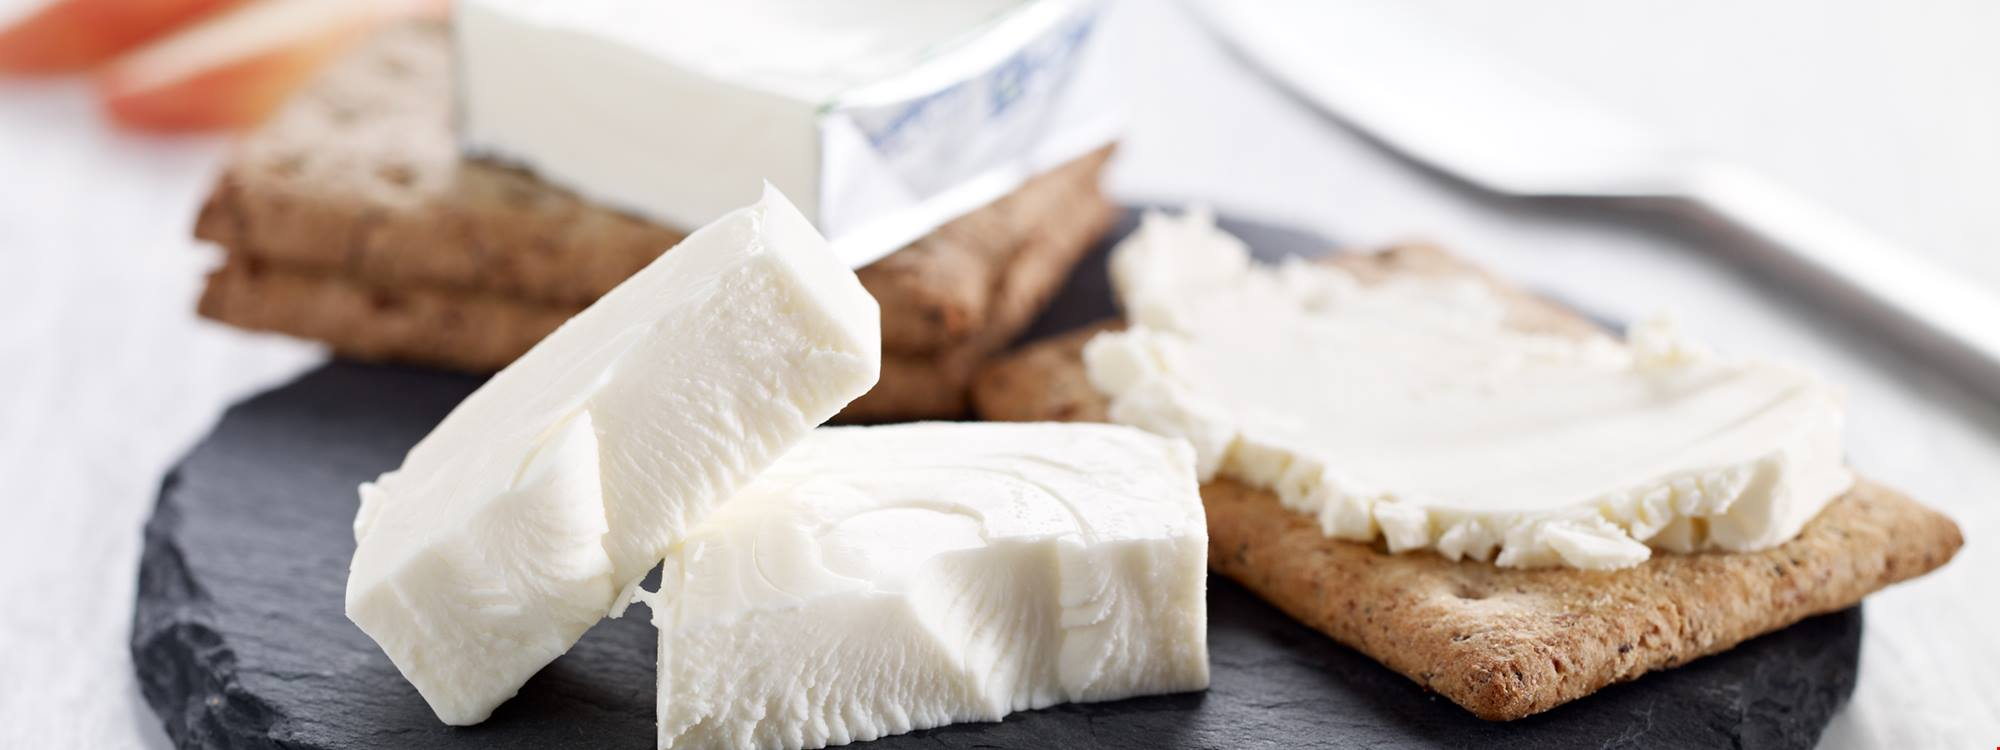 Appealing white cheese with low protein